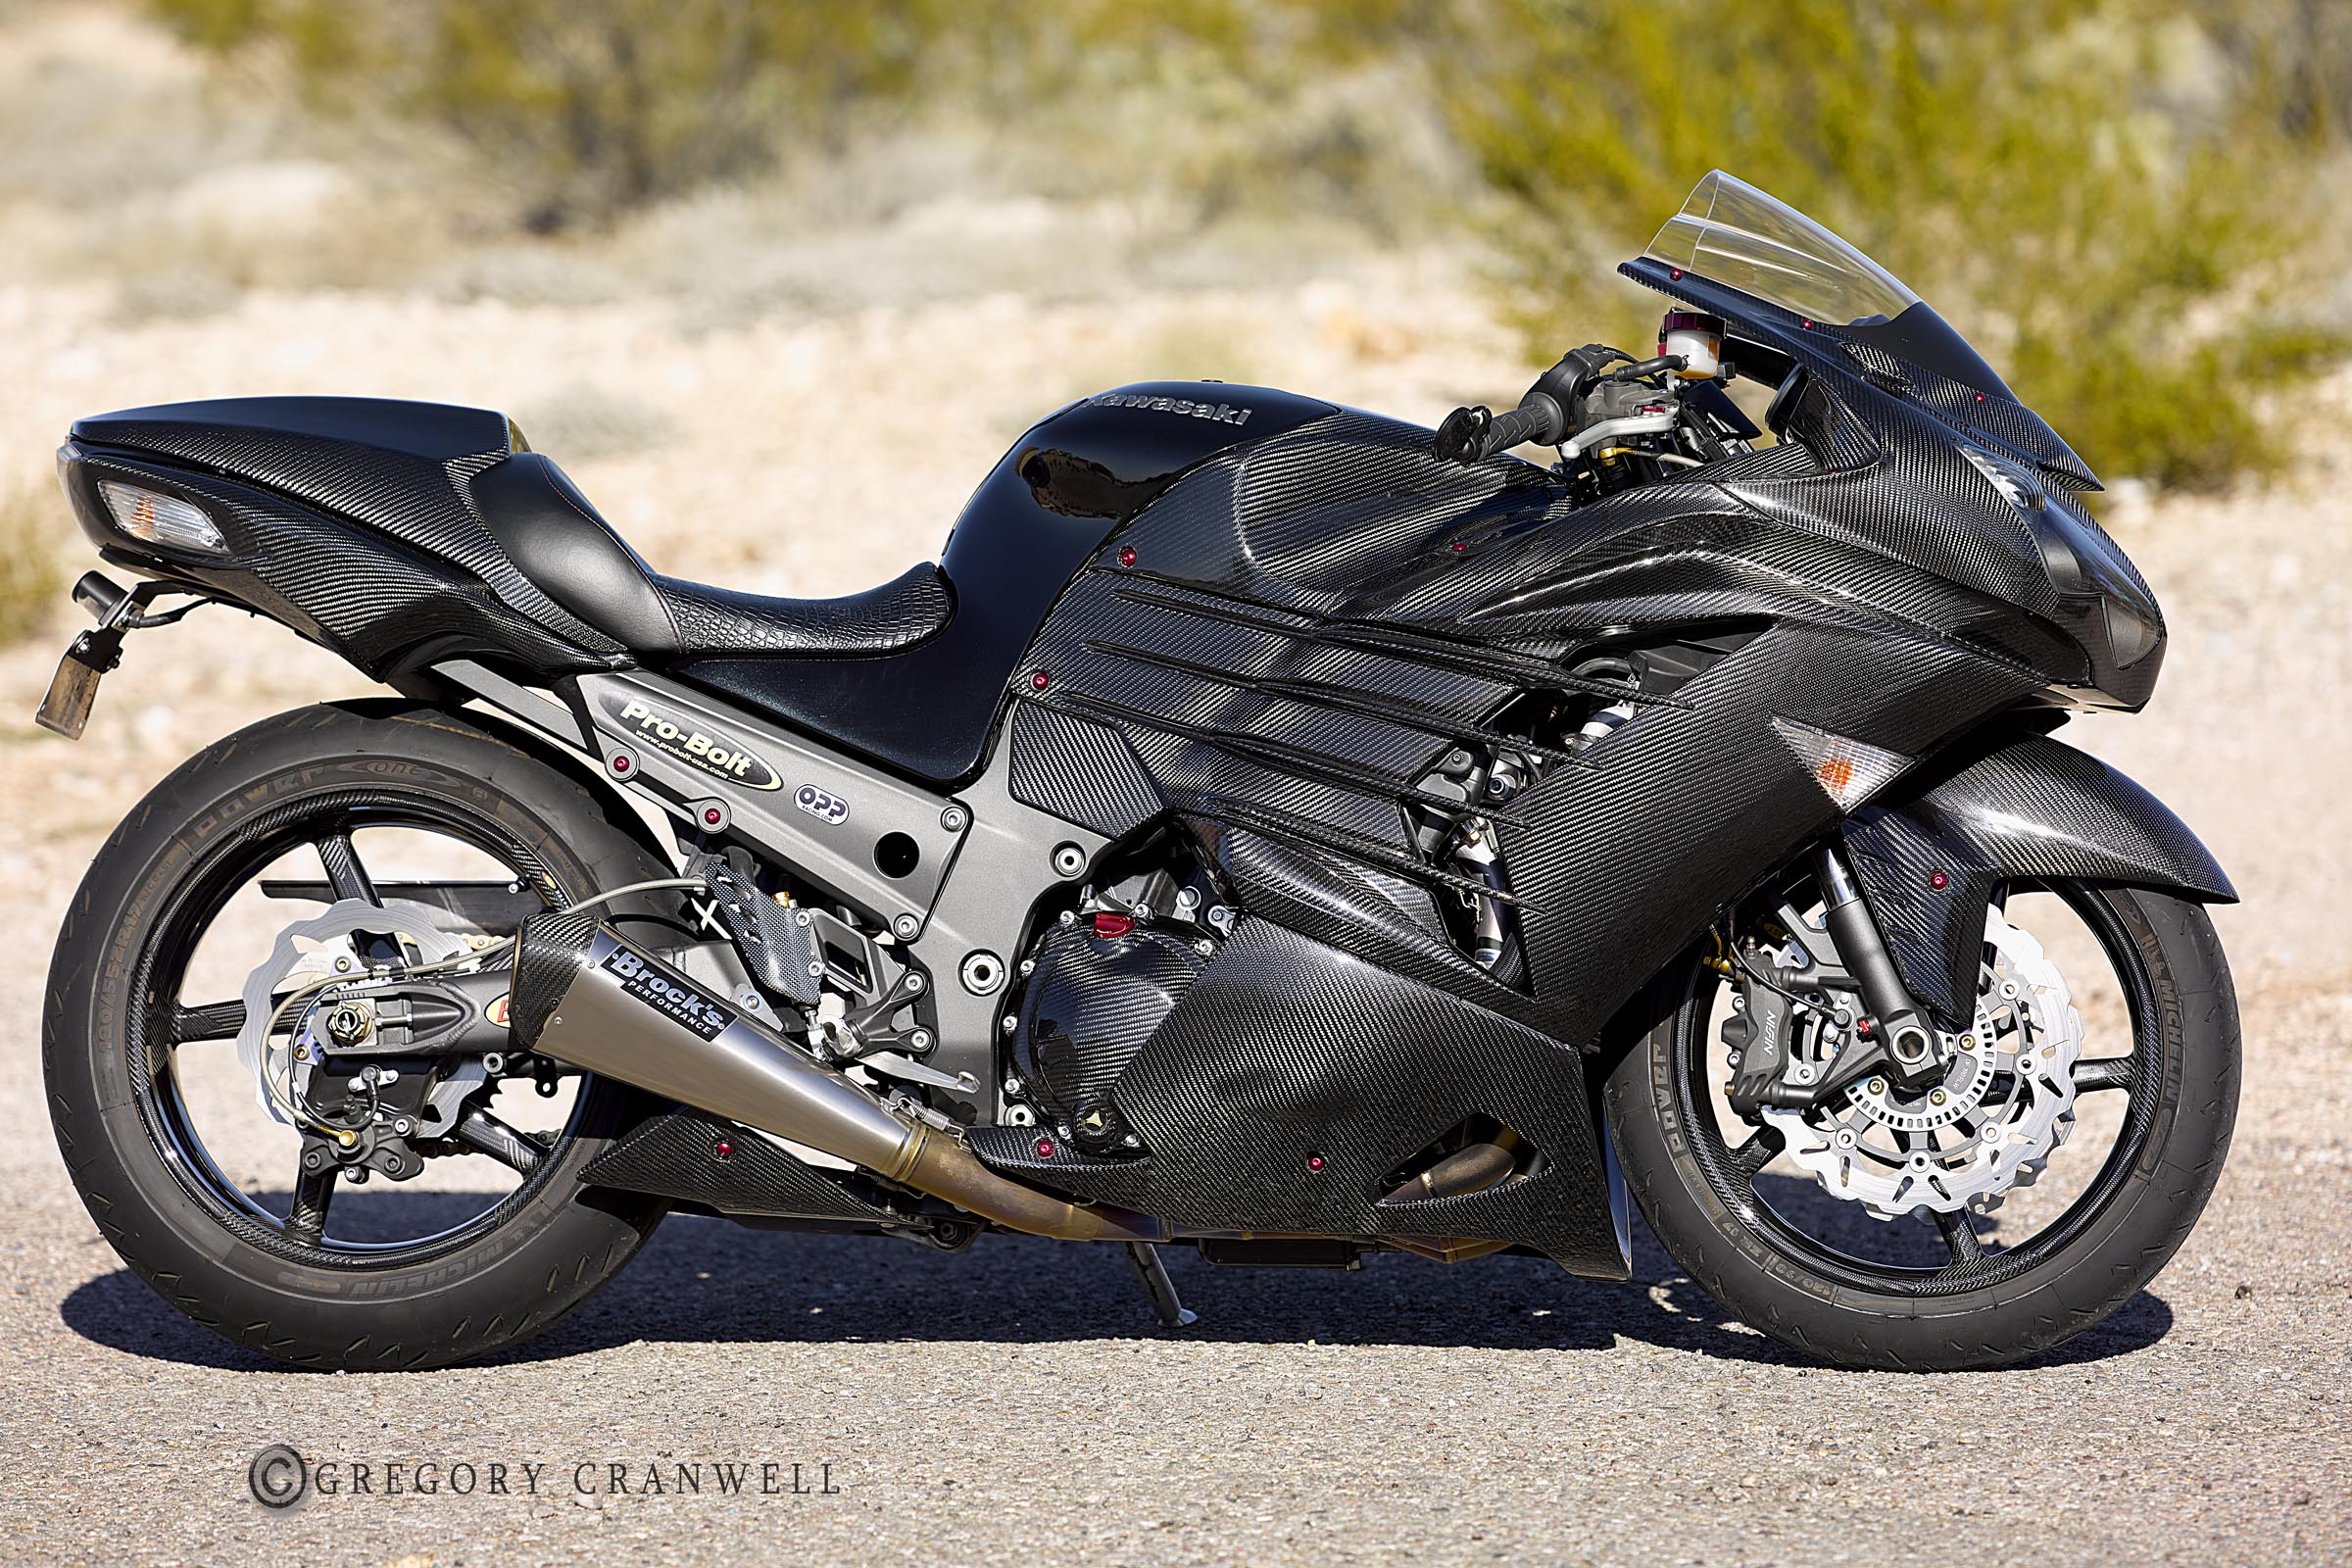 Motorcycle Carbon Fiber And Performance Parts Motocomposites